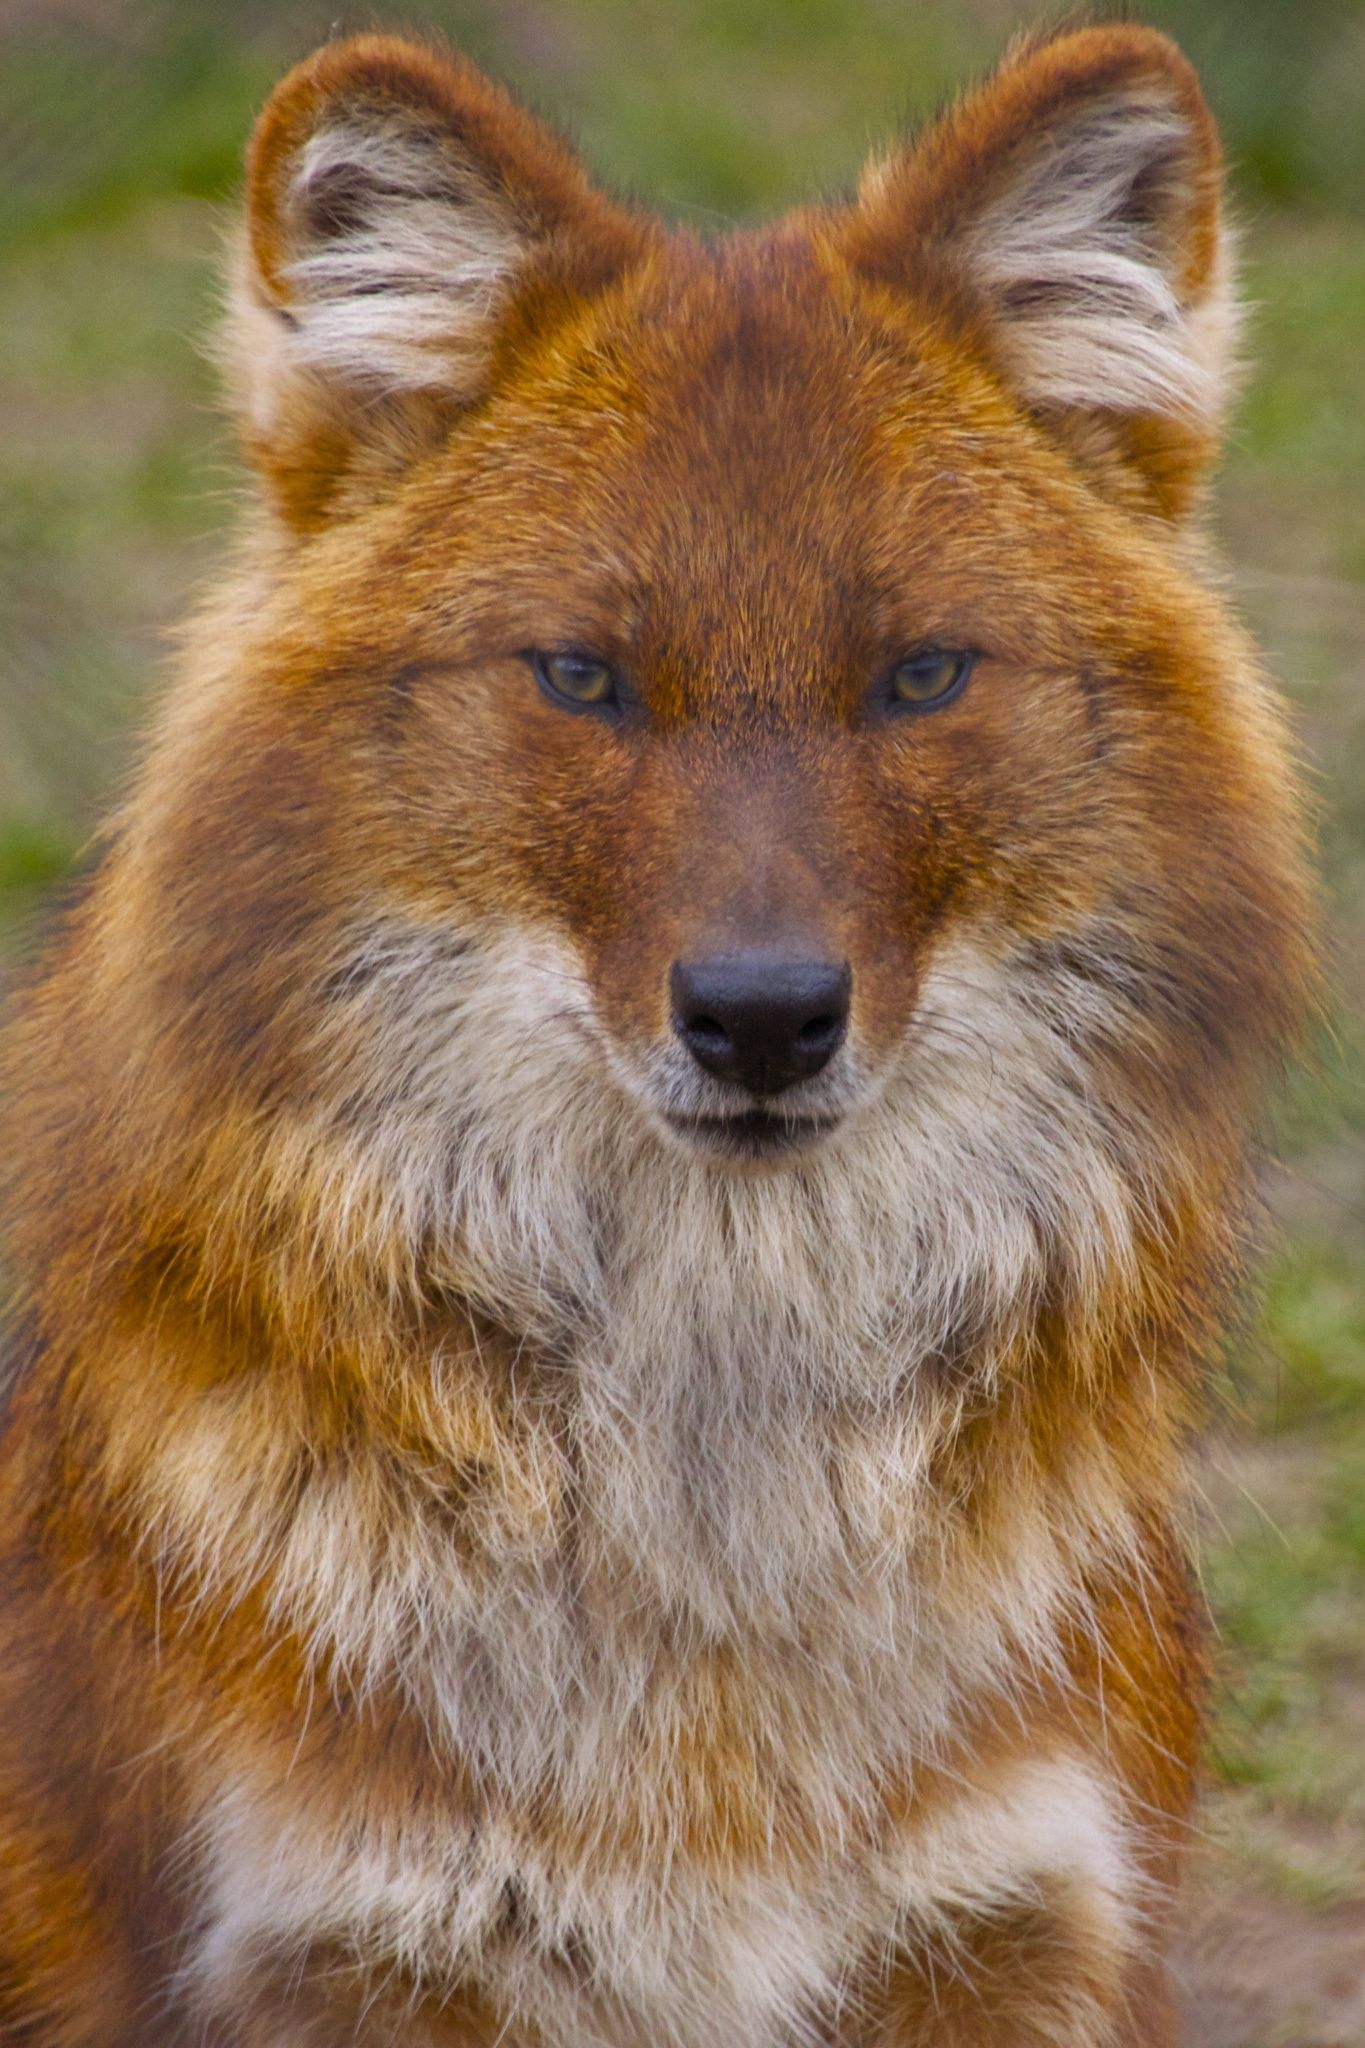 Dhole by James Selwood The dhole (Cuon alpinus) is a